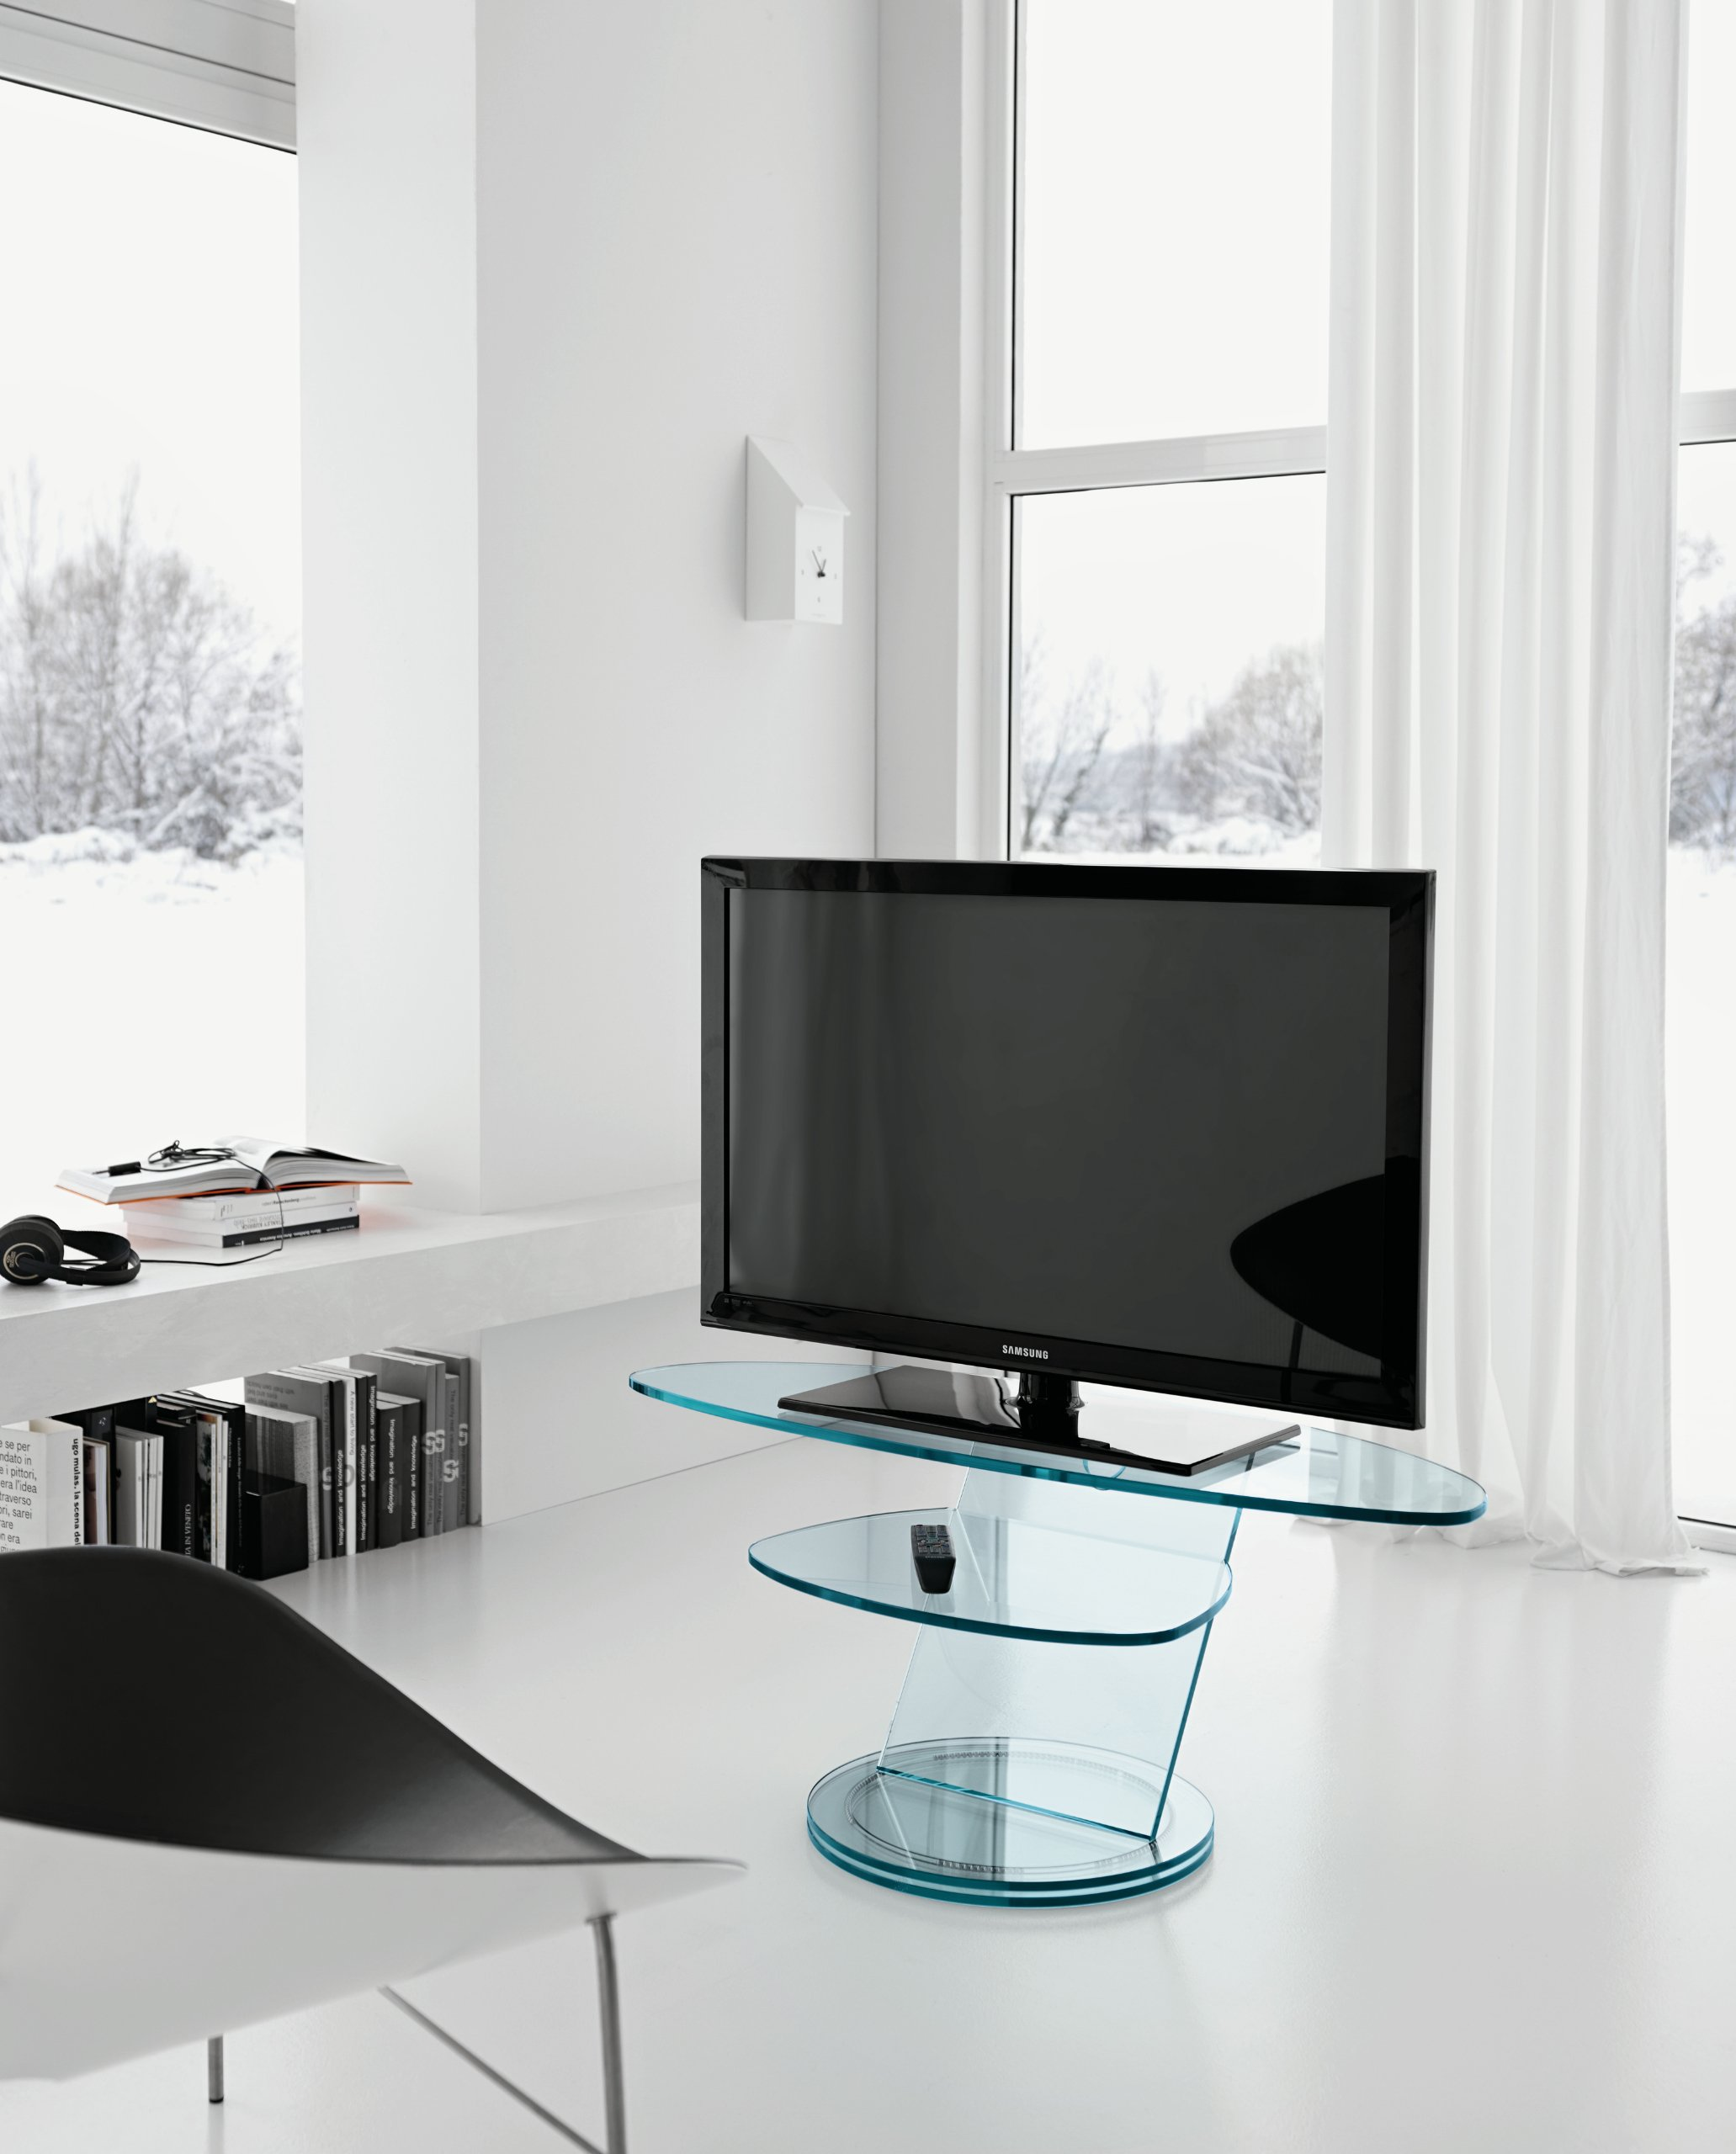 meuble tv en verre scenario by tonelli design design isao hosoe - Meuble Tv En Verre Design